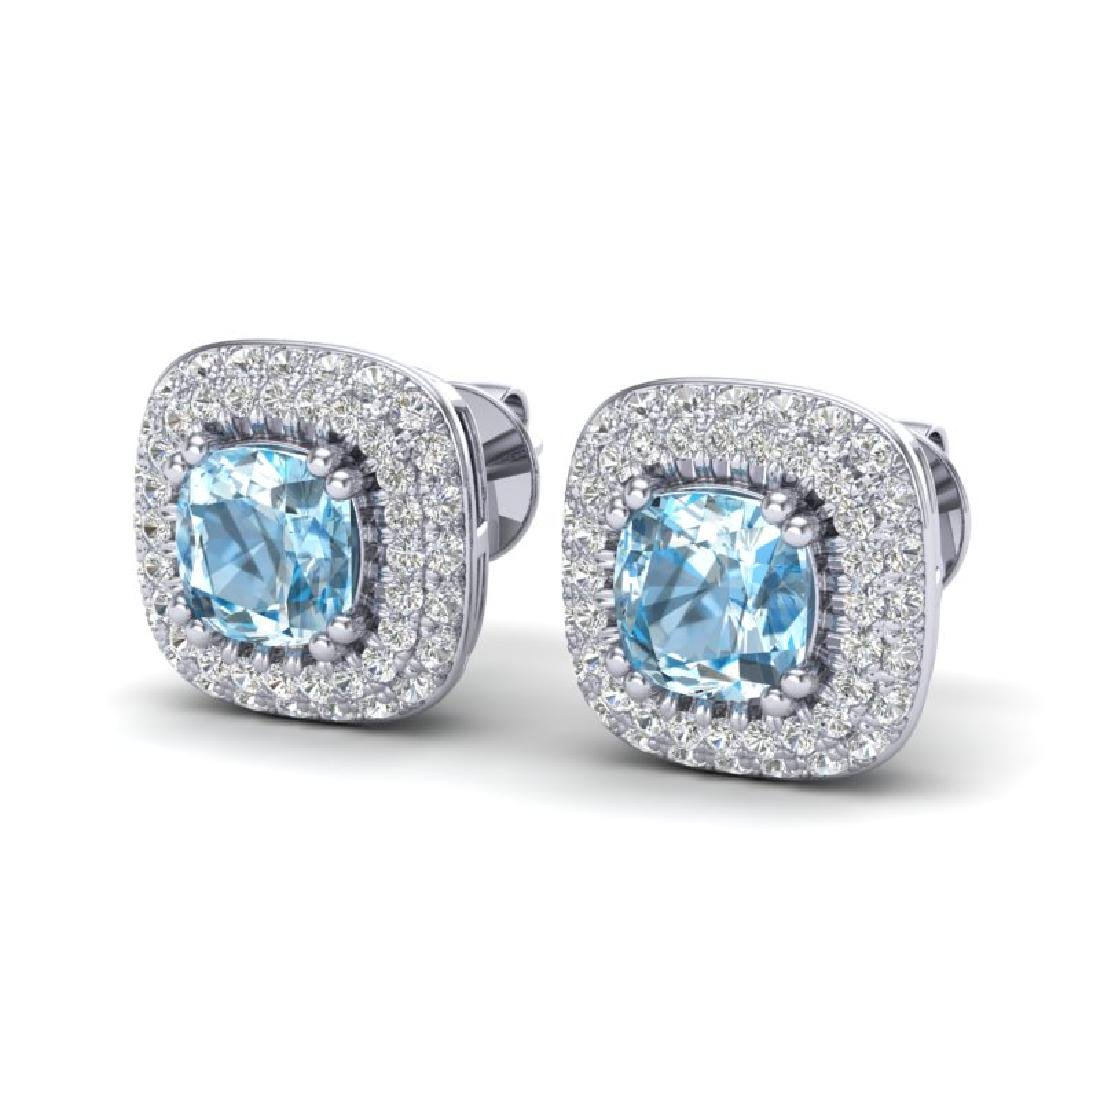 2.16 CTW Sky Blue Topaz & Micro VS/SI Diamond Earrings